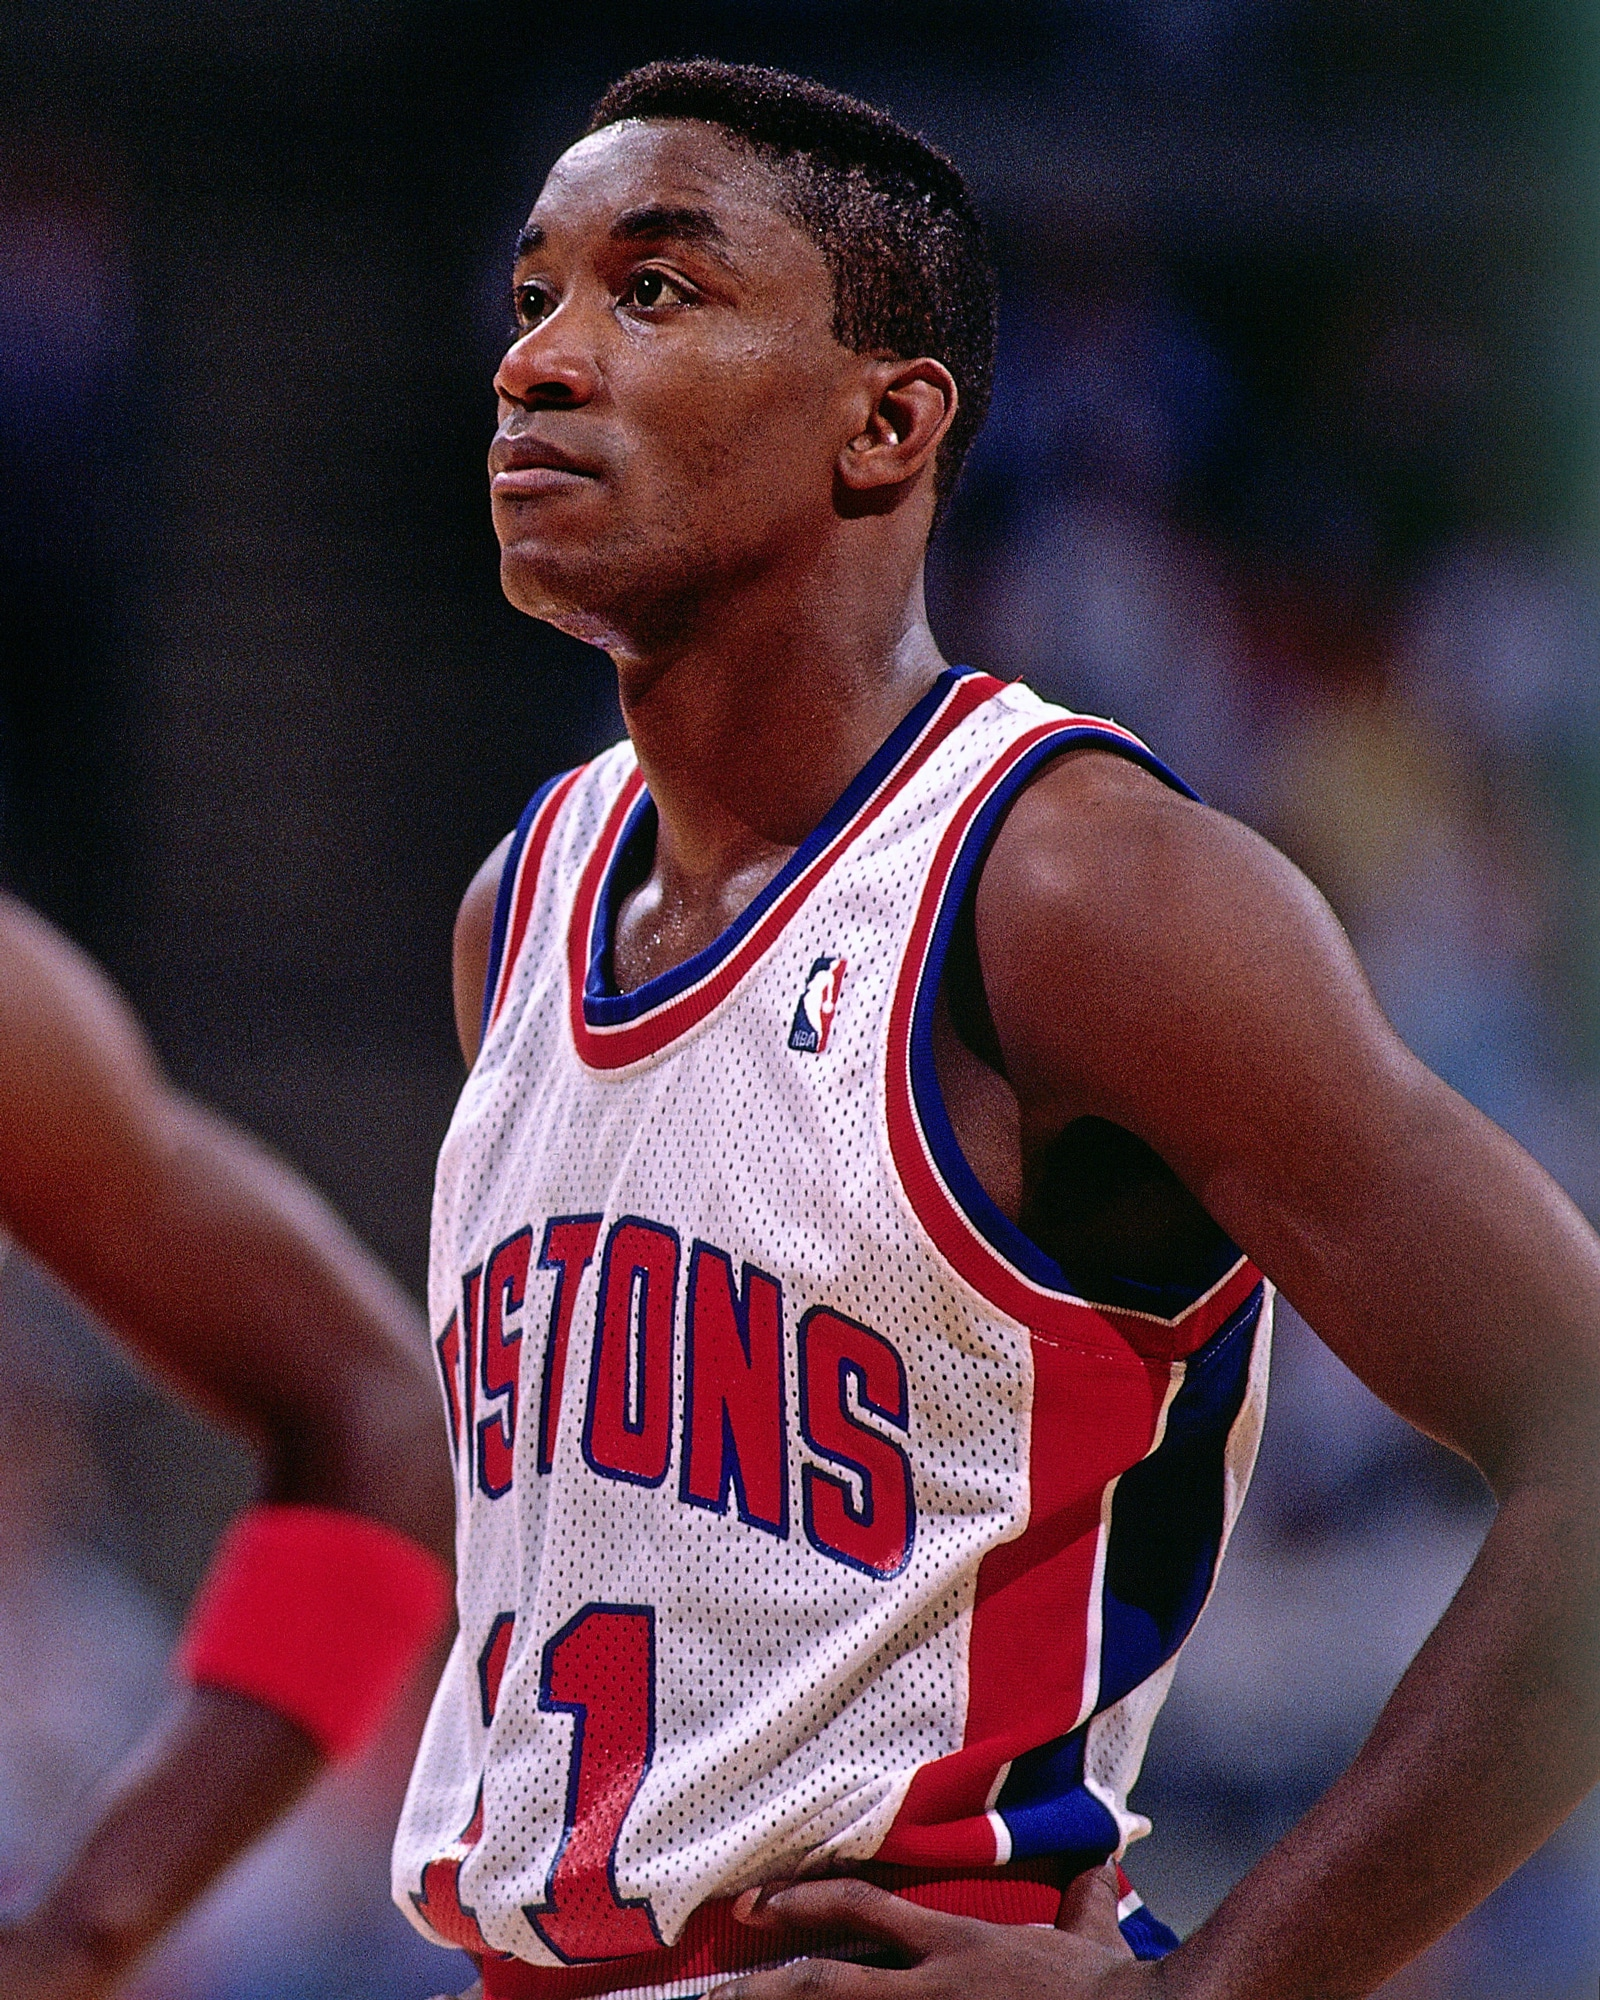 Pistons guard and Chicago native Isiah Thomas attended St. Joseph High School in Westchester.